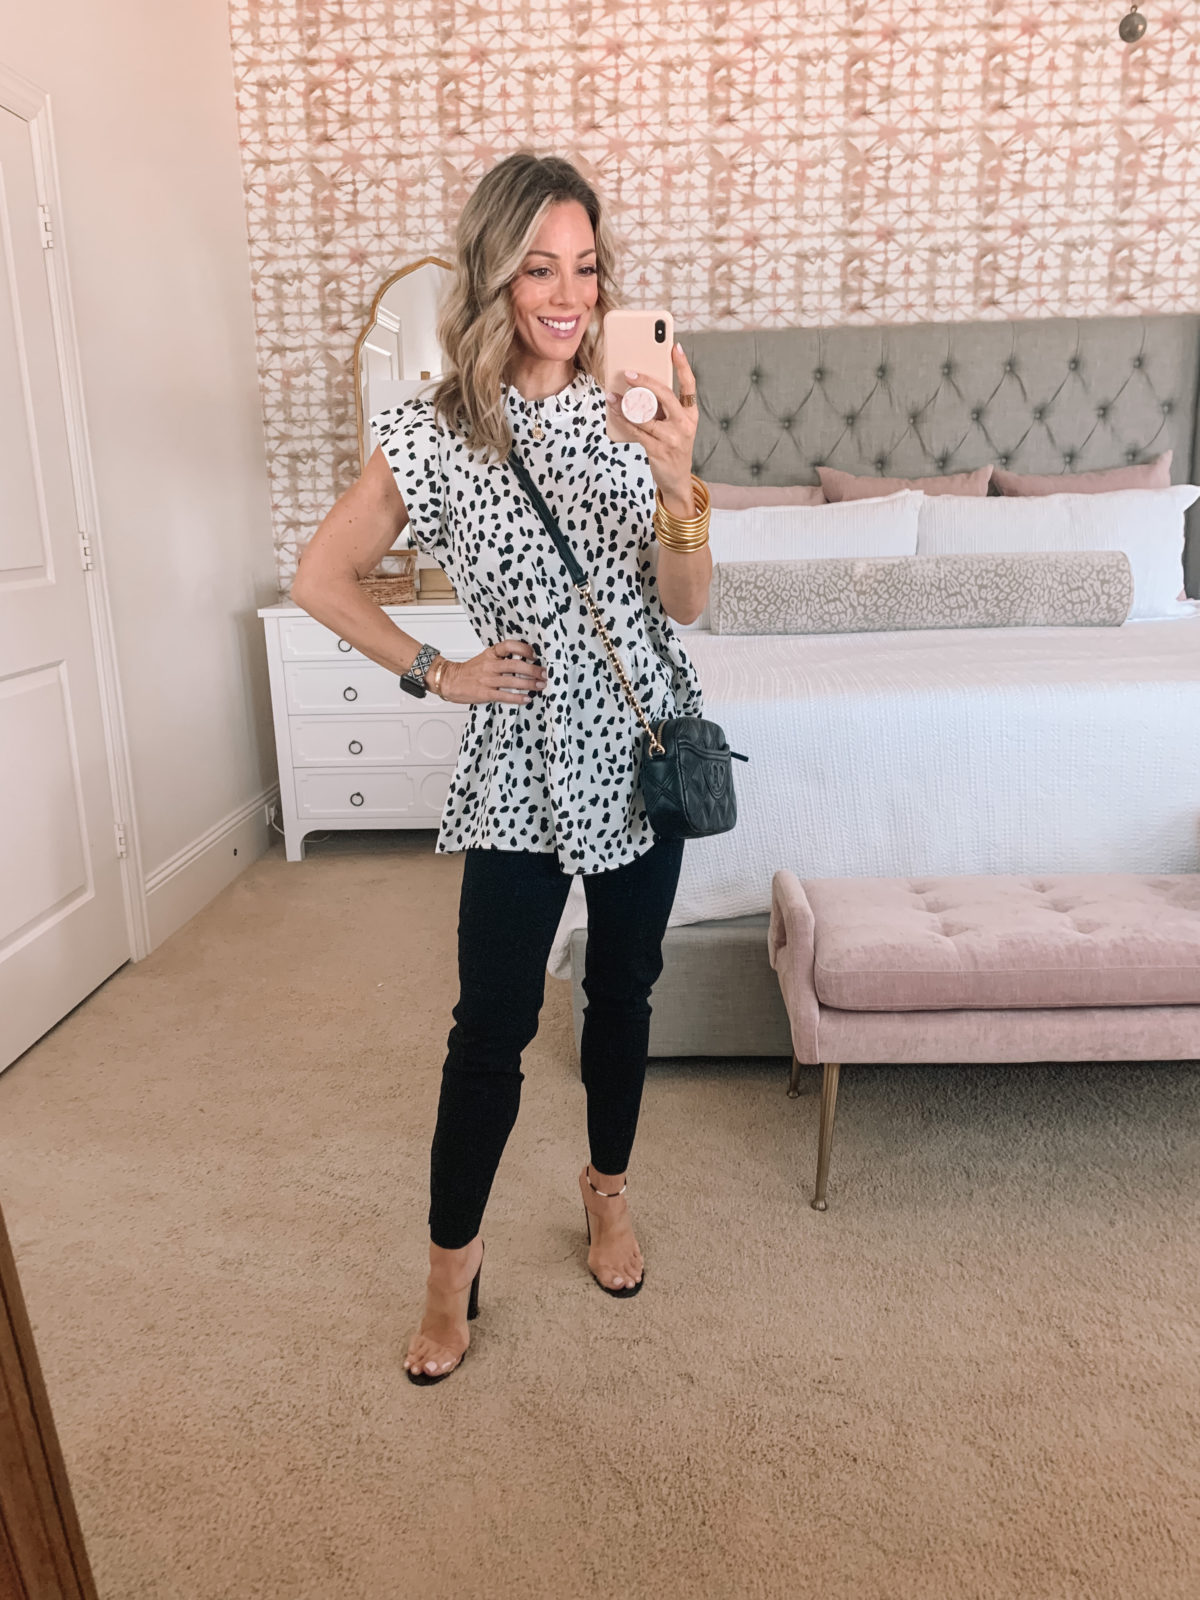 Amazon Fashion Faves, Leopard Dot Tunic Top and Pants, Clear Sandals and Crossbody